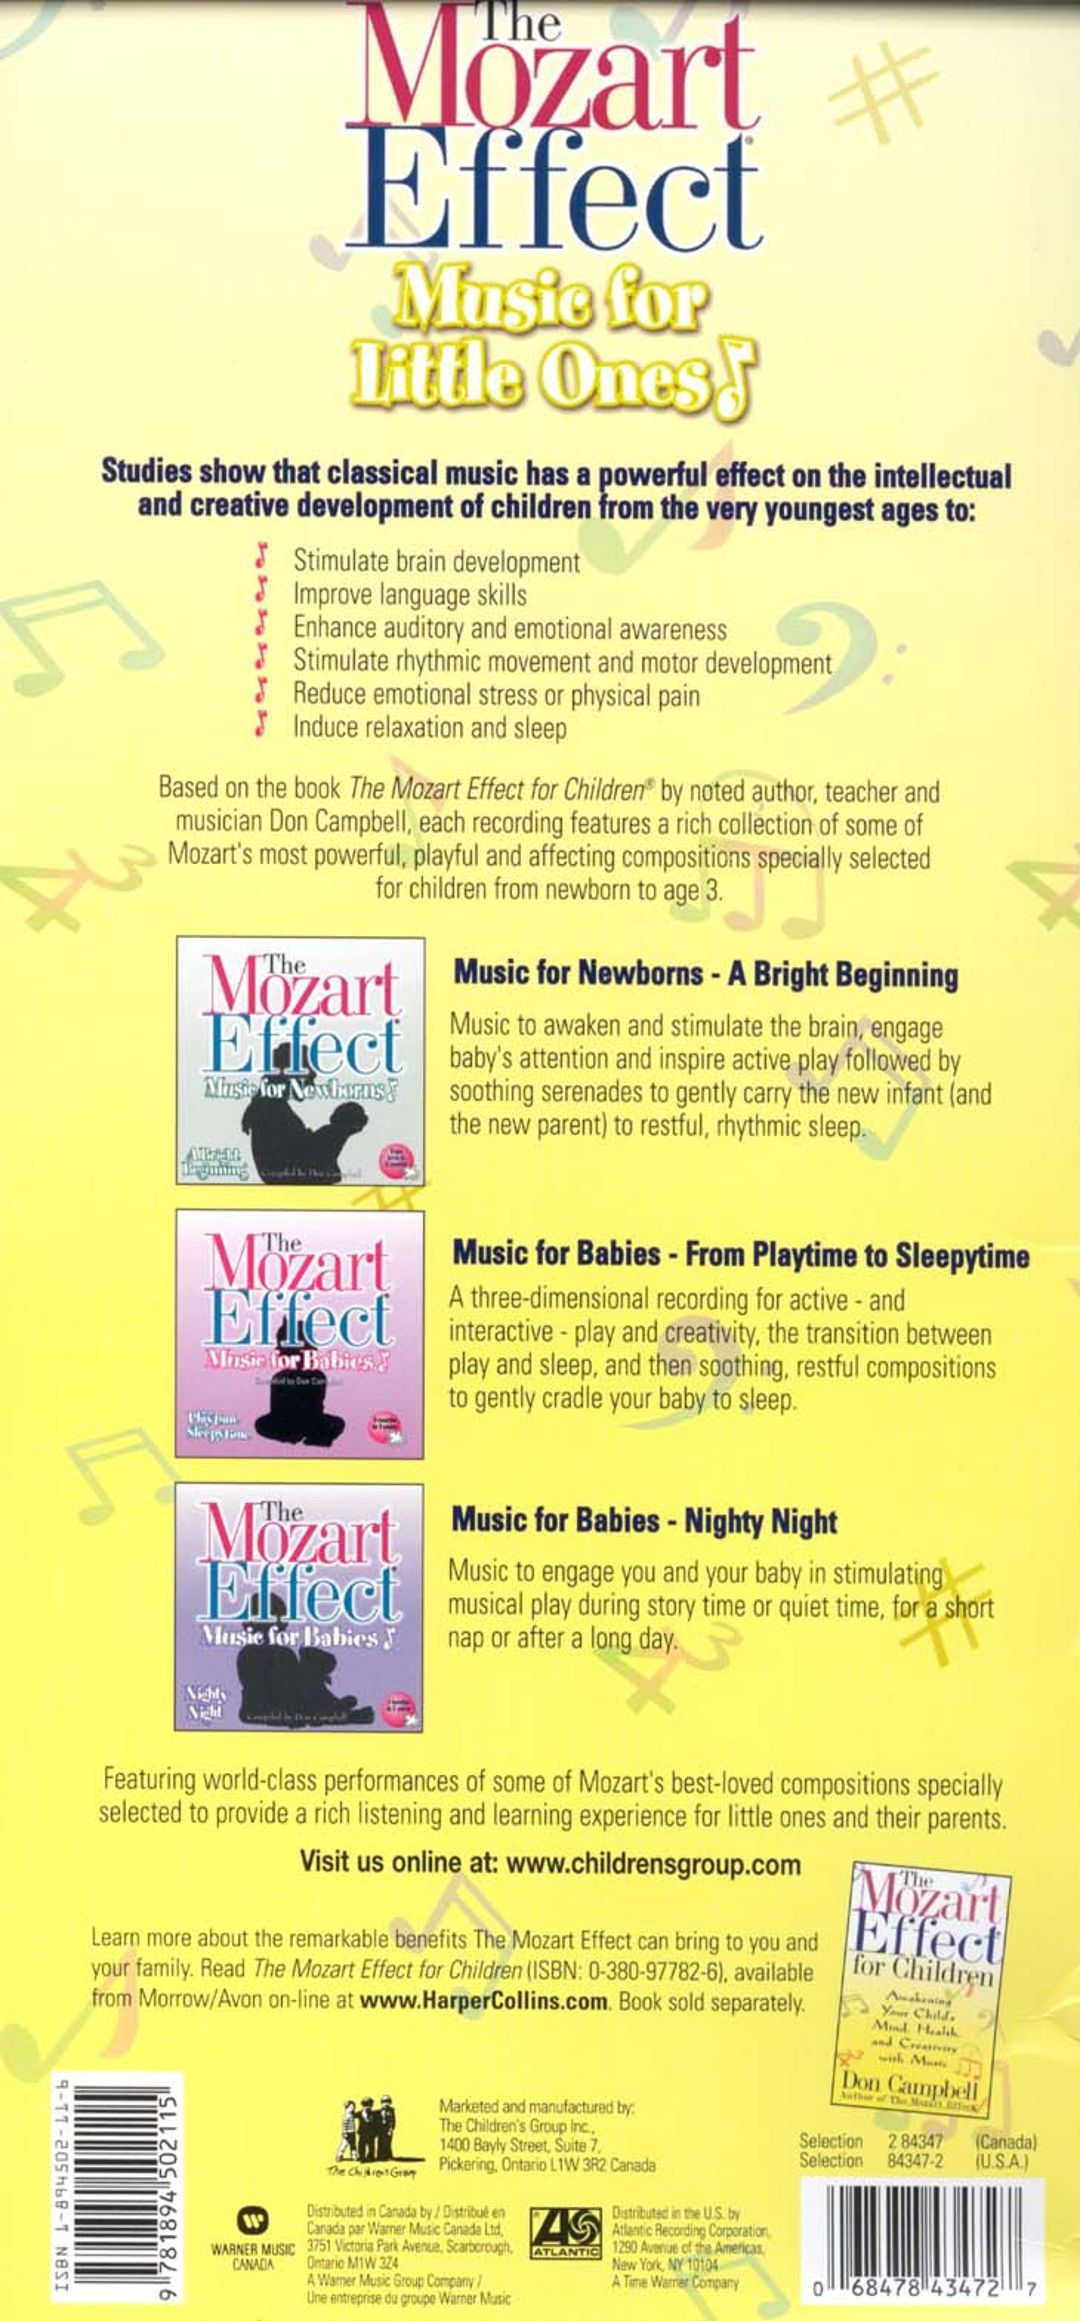 The Mozart Effect: Music for Little Ones